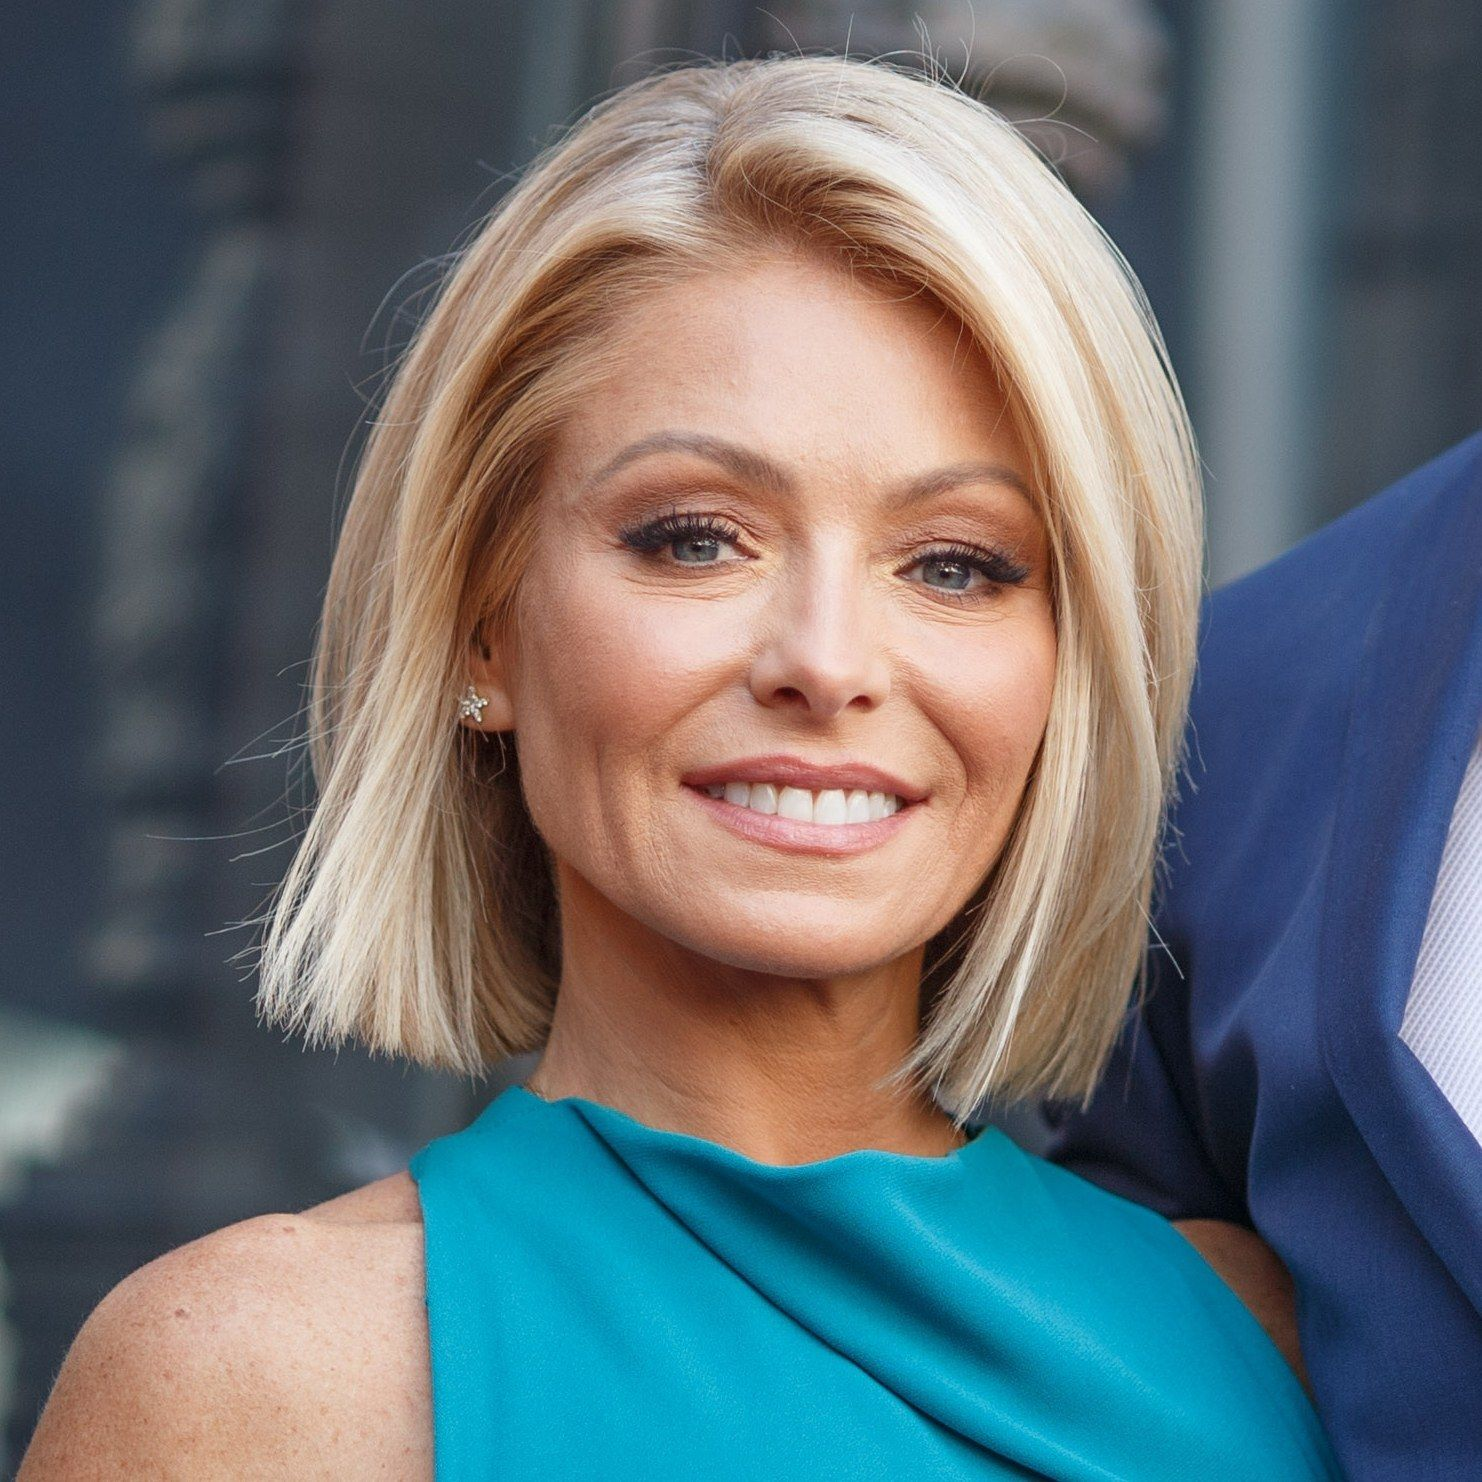 Look - Extensions Hair like kelly ripa pictures video